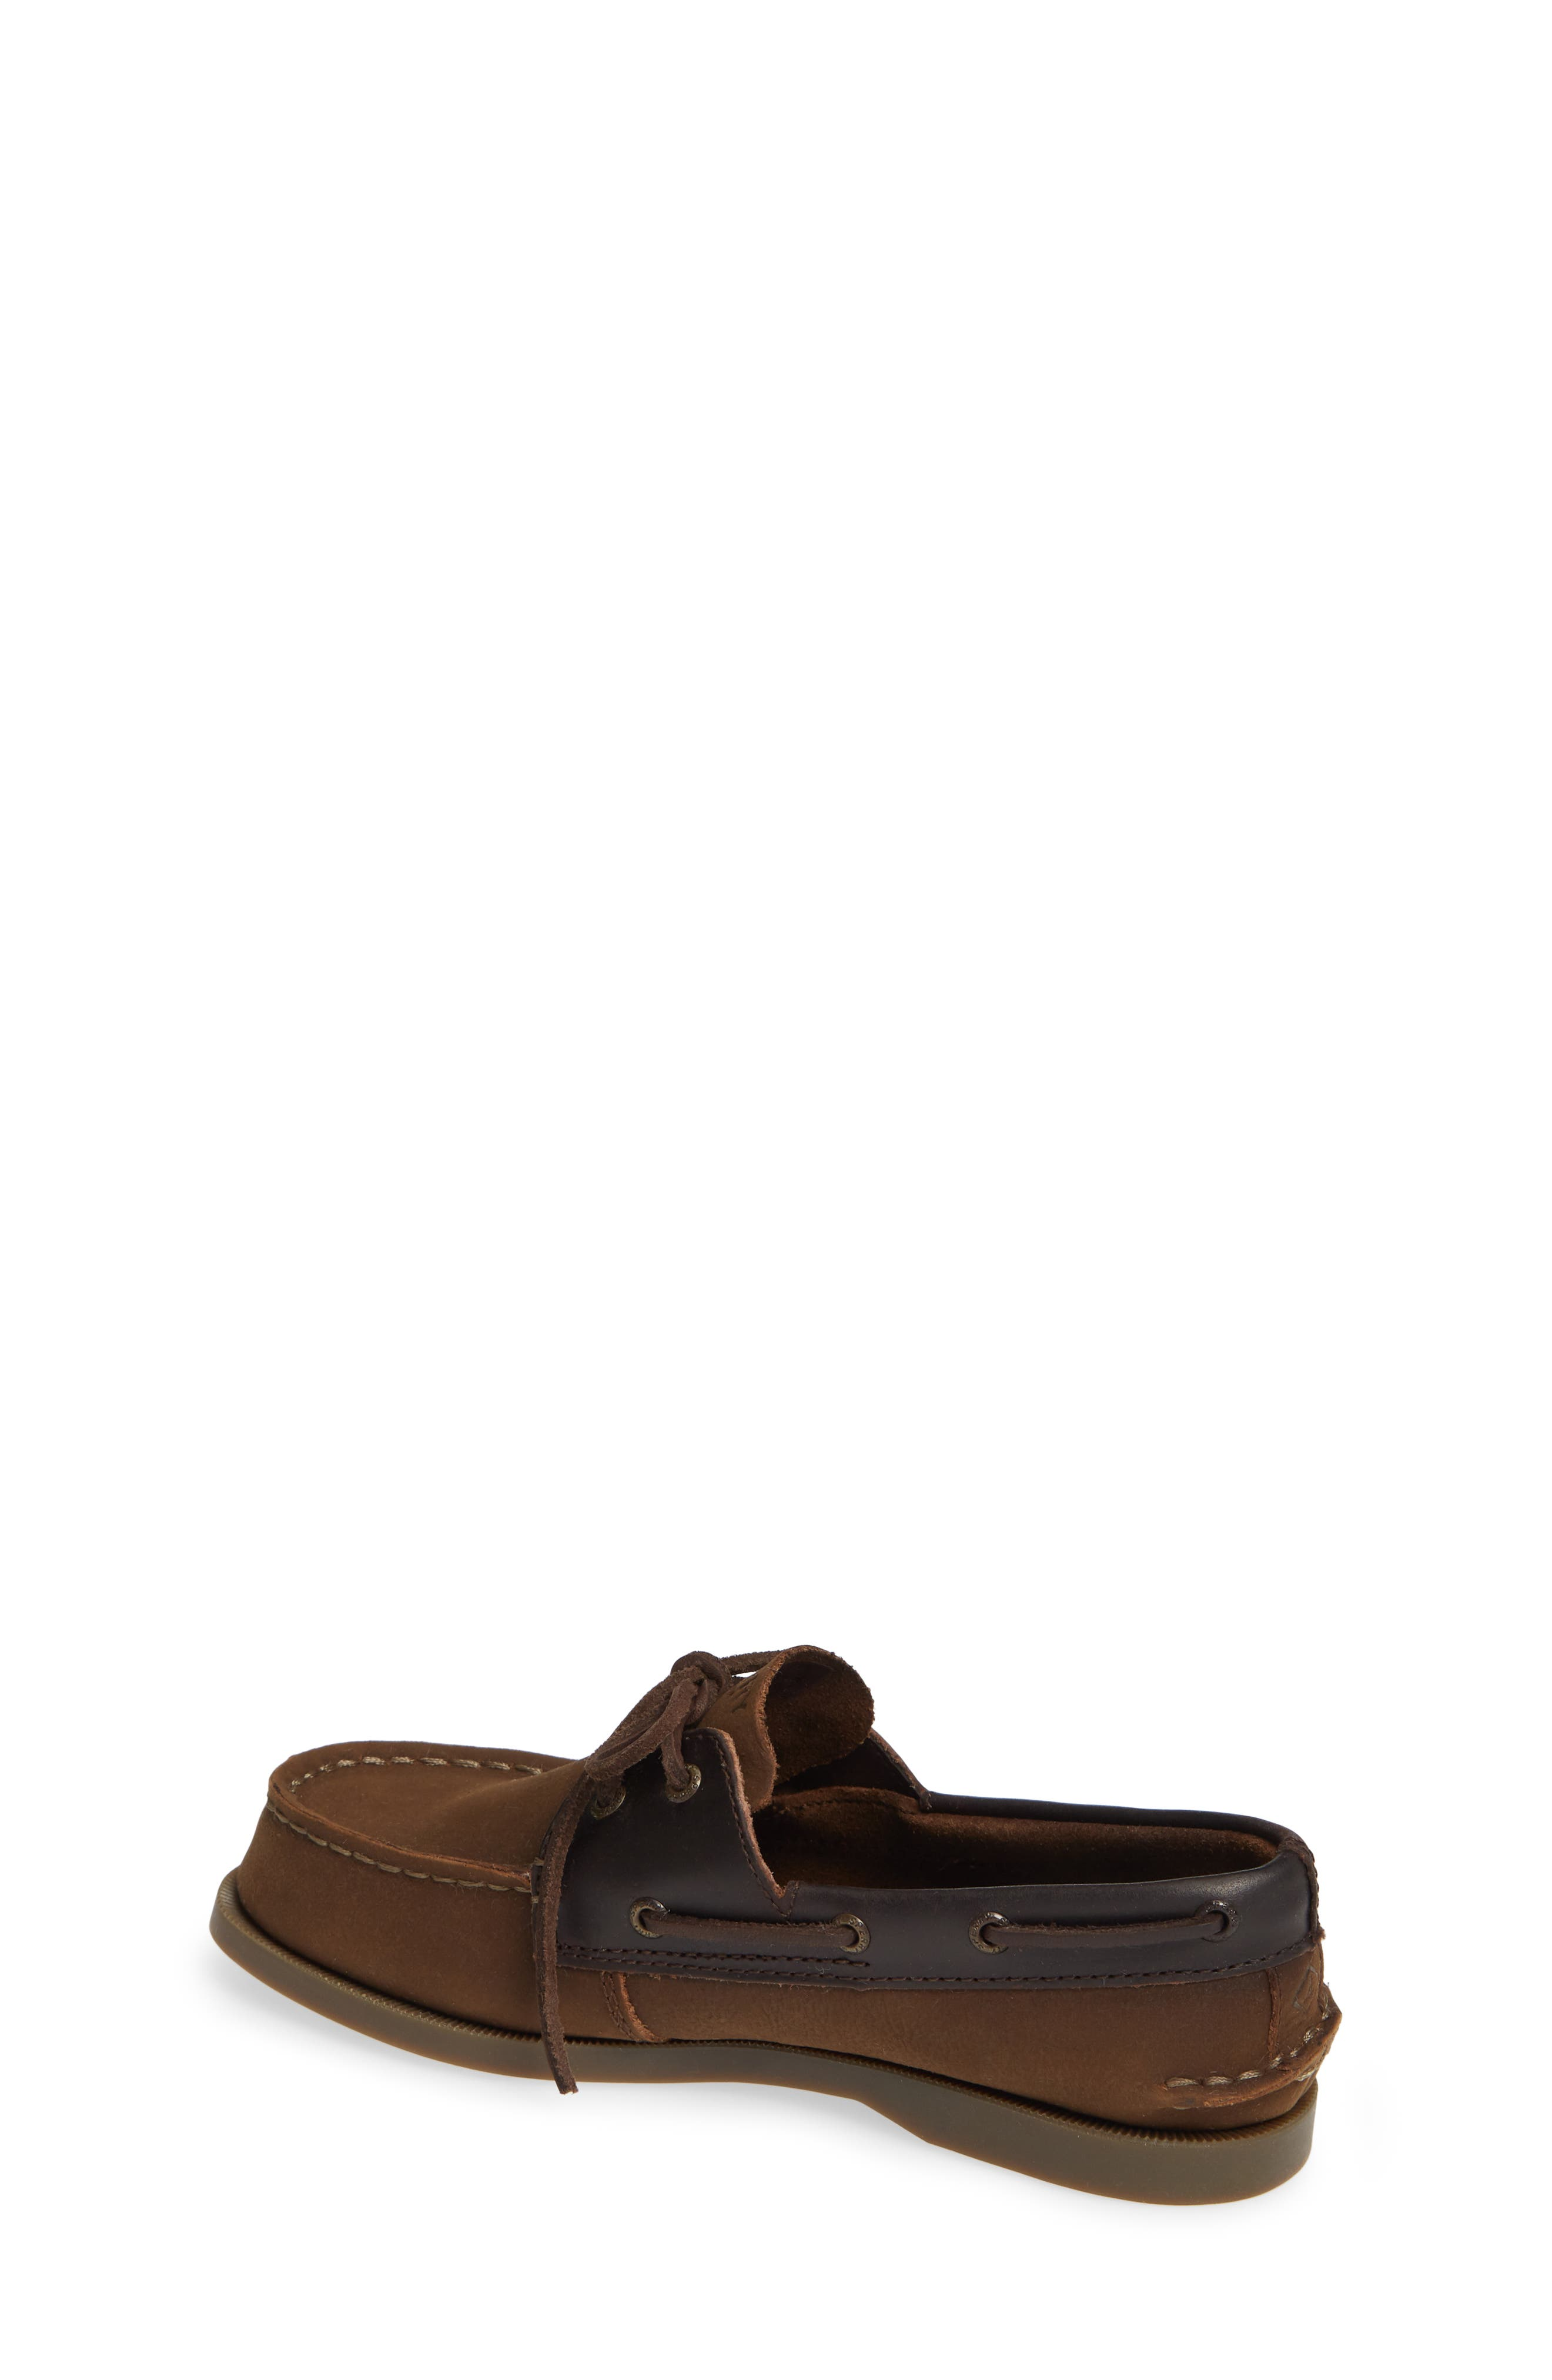 'Authentic Original' Boat Shoe,                             Alternate thumbnail 2, color,                             BROWN BUCK LEATHER